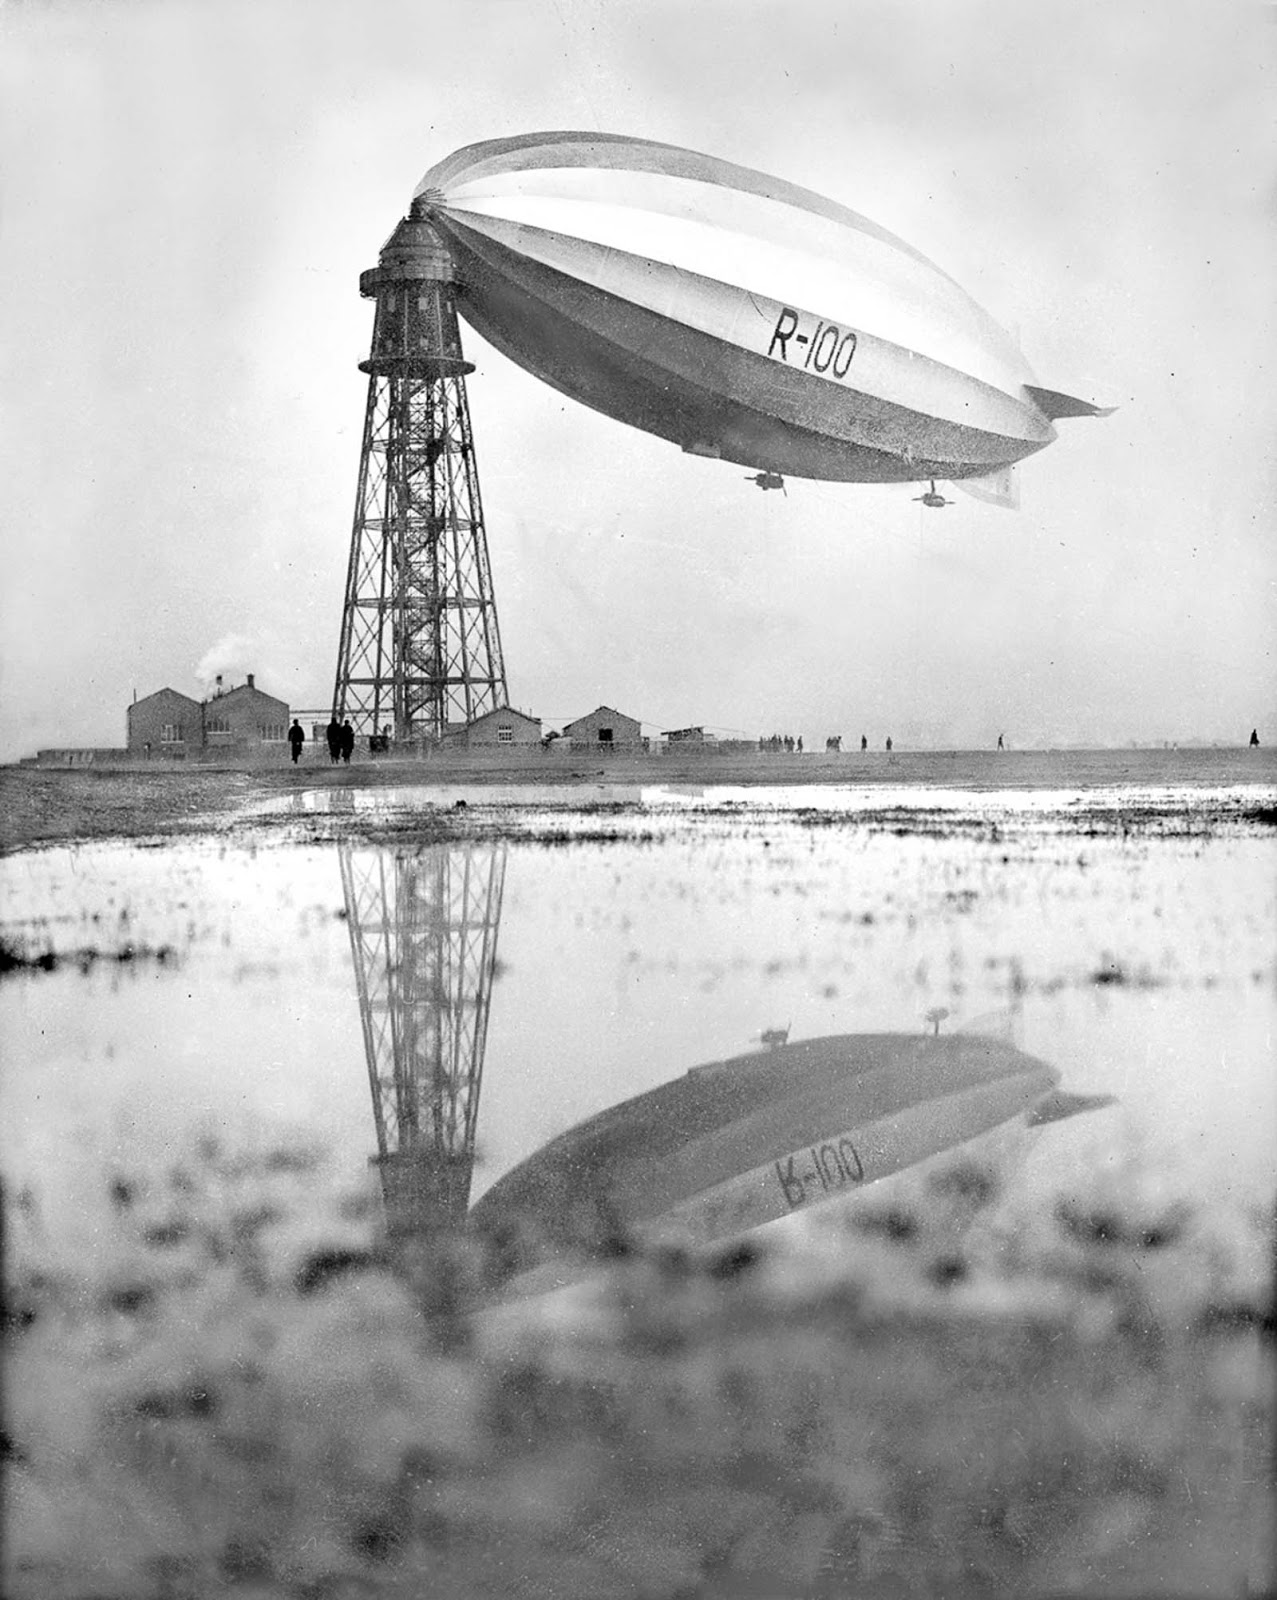 The R-100 moored in Cardington, England. 1929.